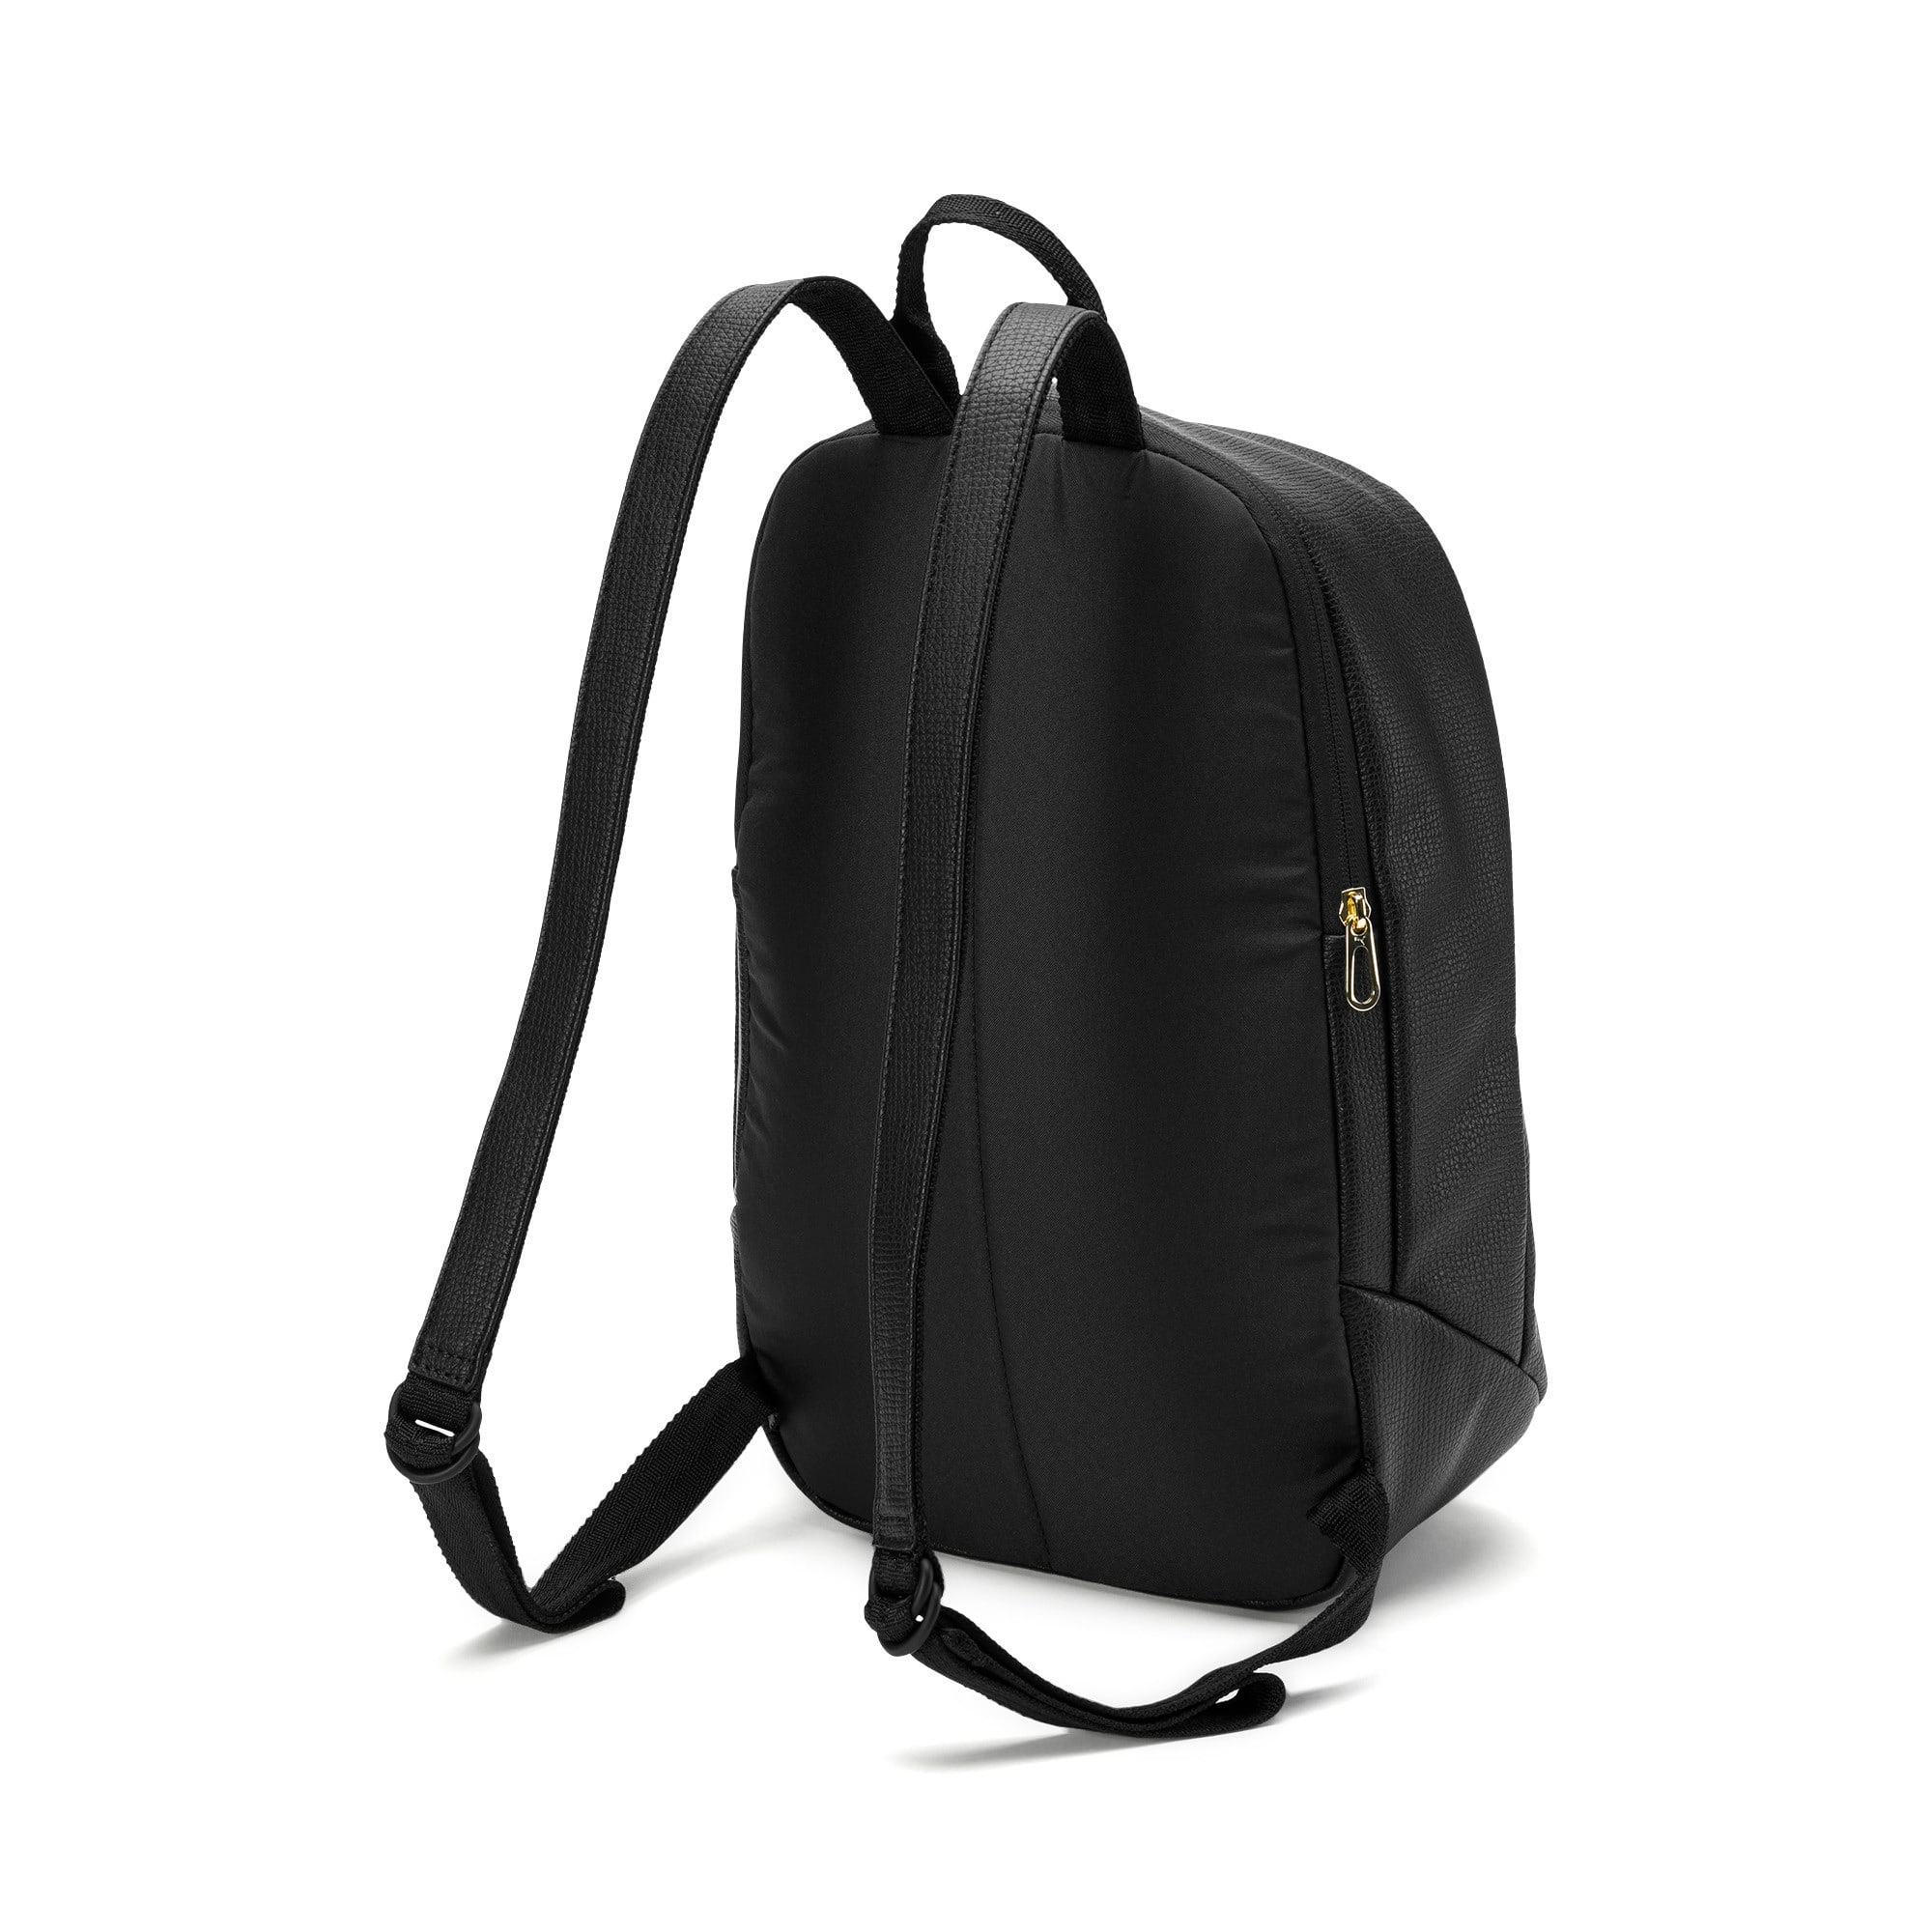 Thumbnail 3 of Ferrari Lifestyle Zainetto Rucksack, Puma Black, medium